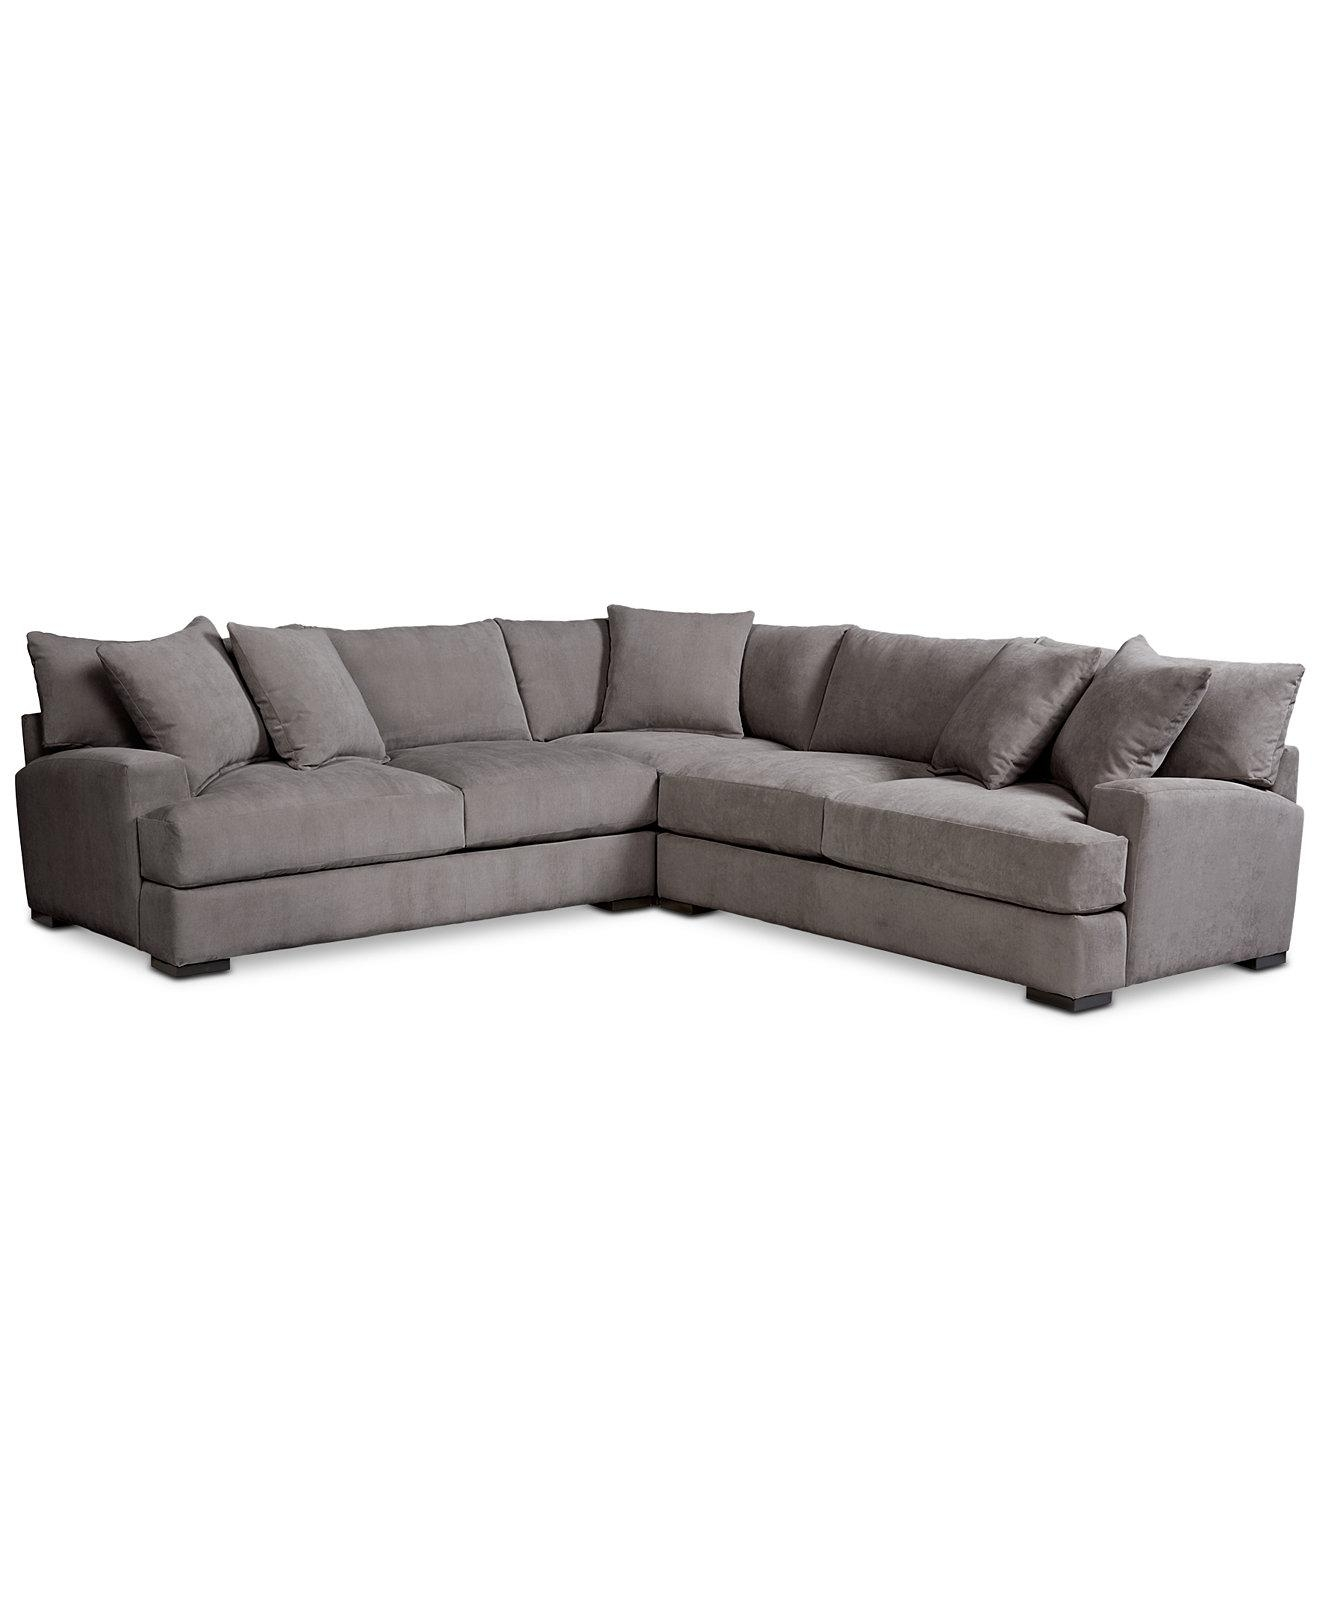 Sofas: Elegant Living Room Sofas Designmacys Sectional Sofa Regarding Macys Sectional (Image 17 of 20)